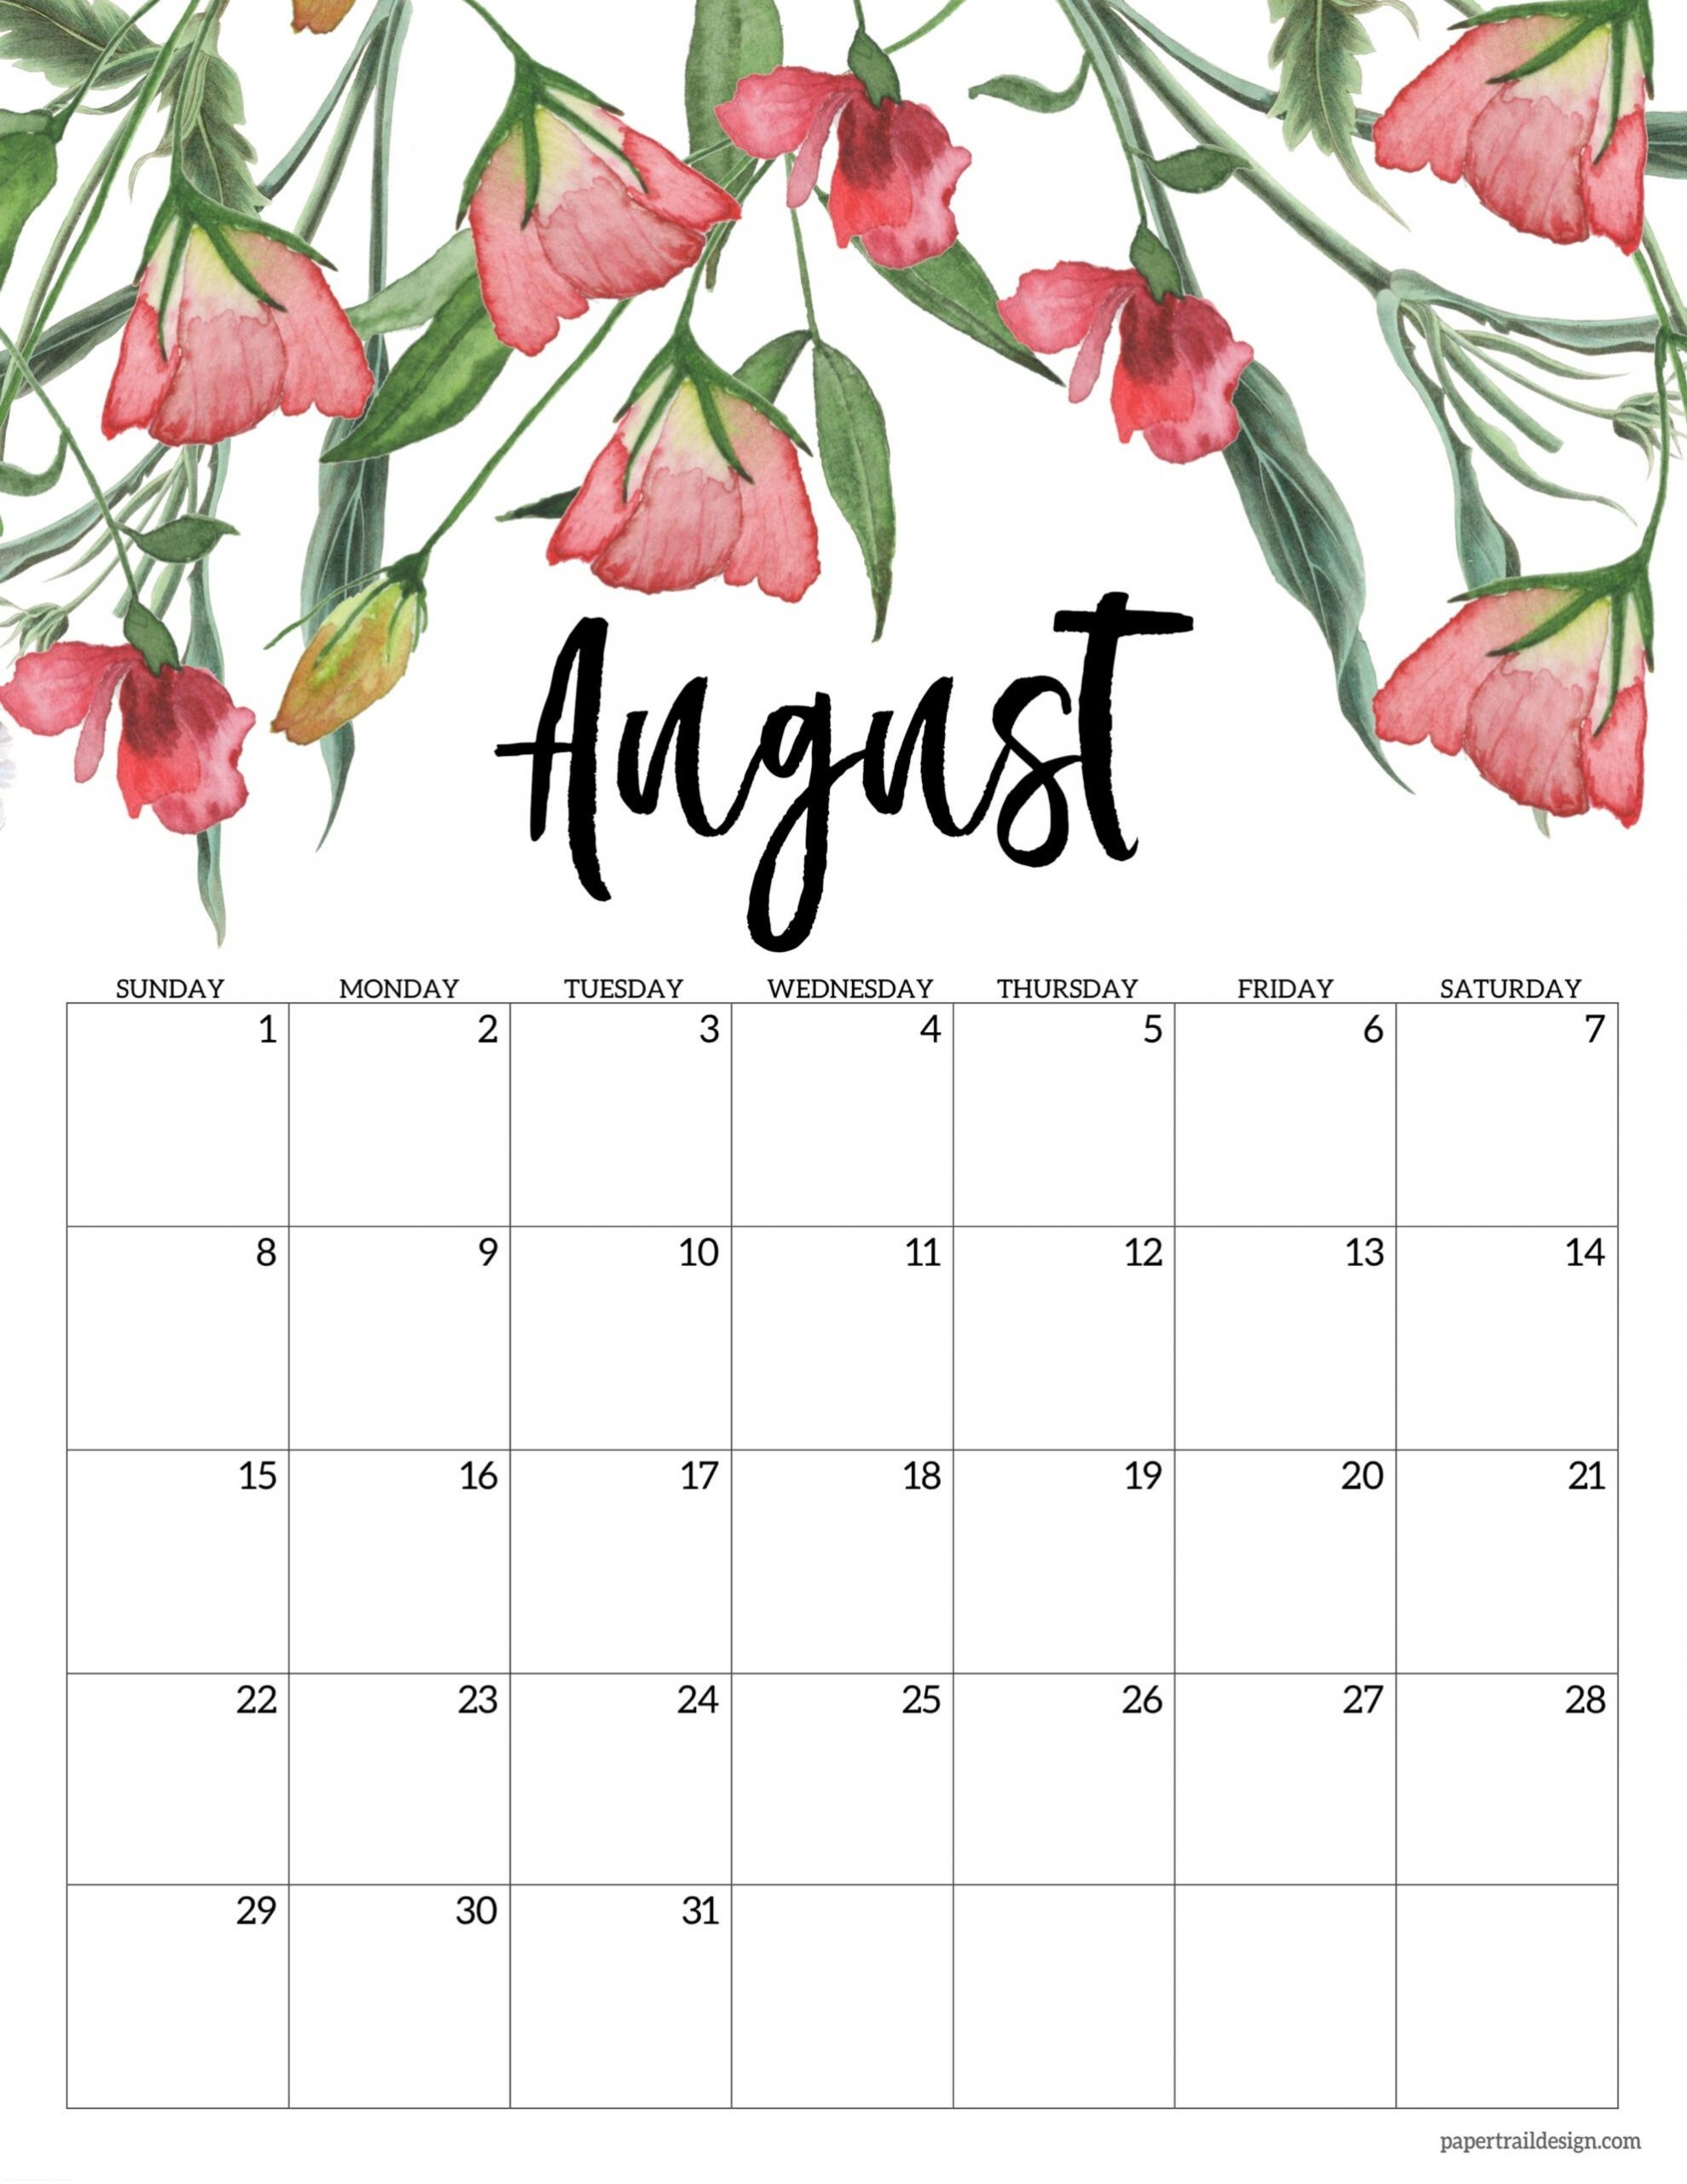 Free Printable 2021 Floral Calendar | Paper Trail Design  July 2021 Printable Calendar Girly